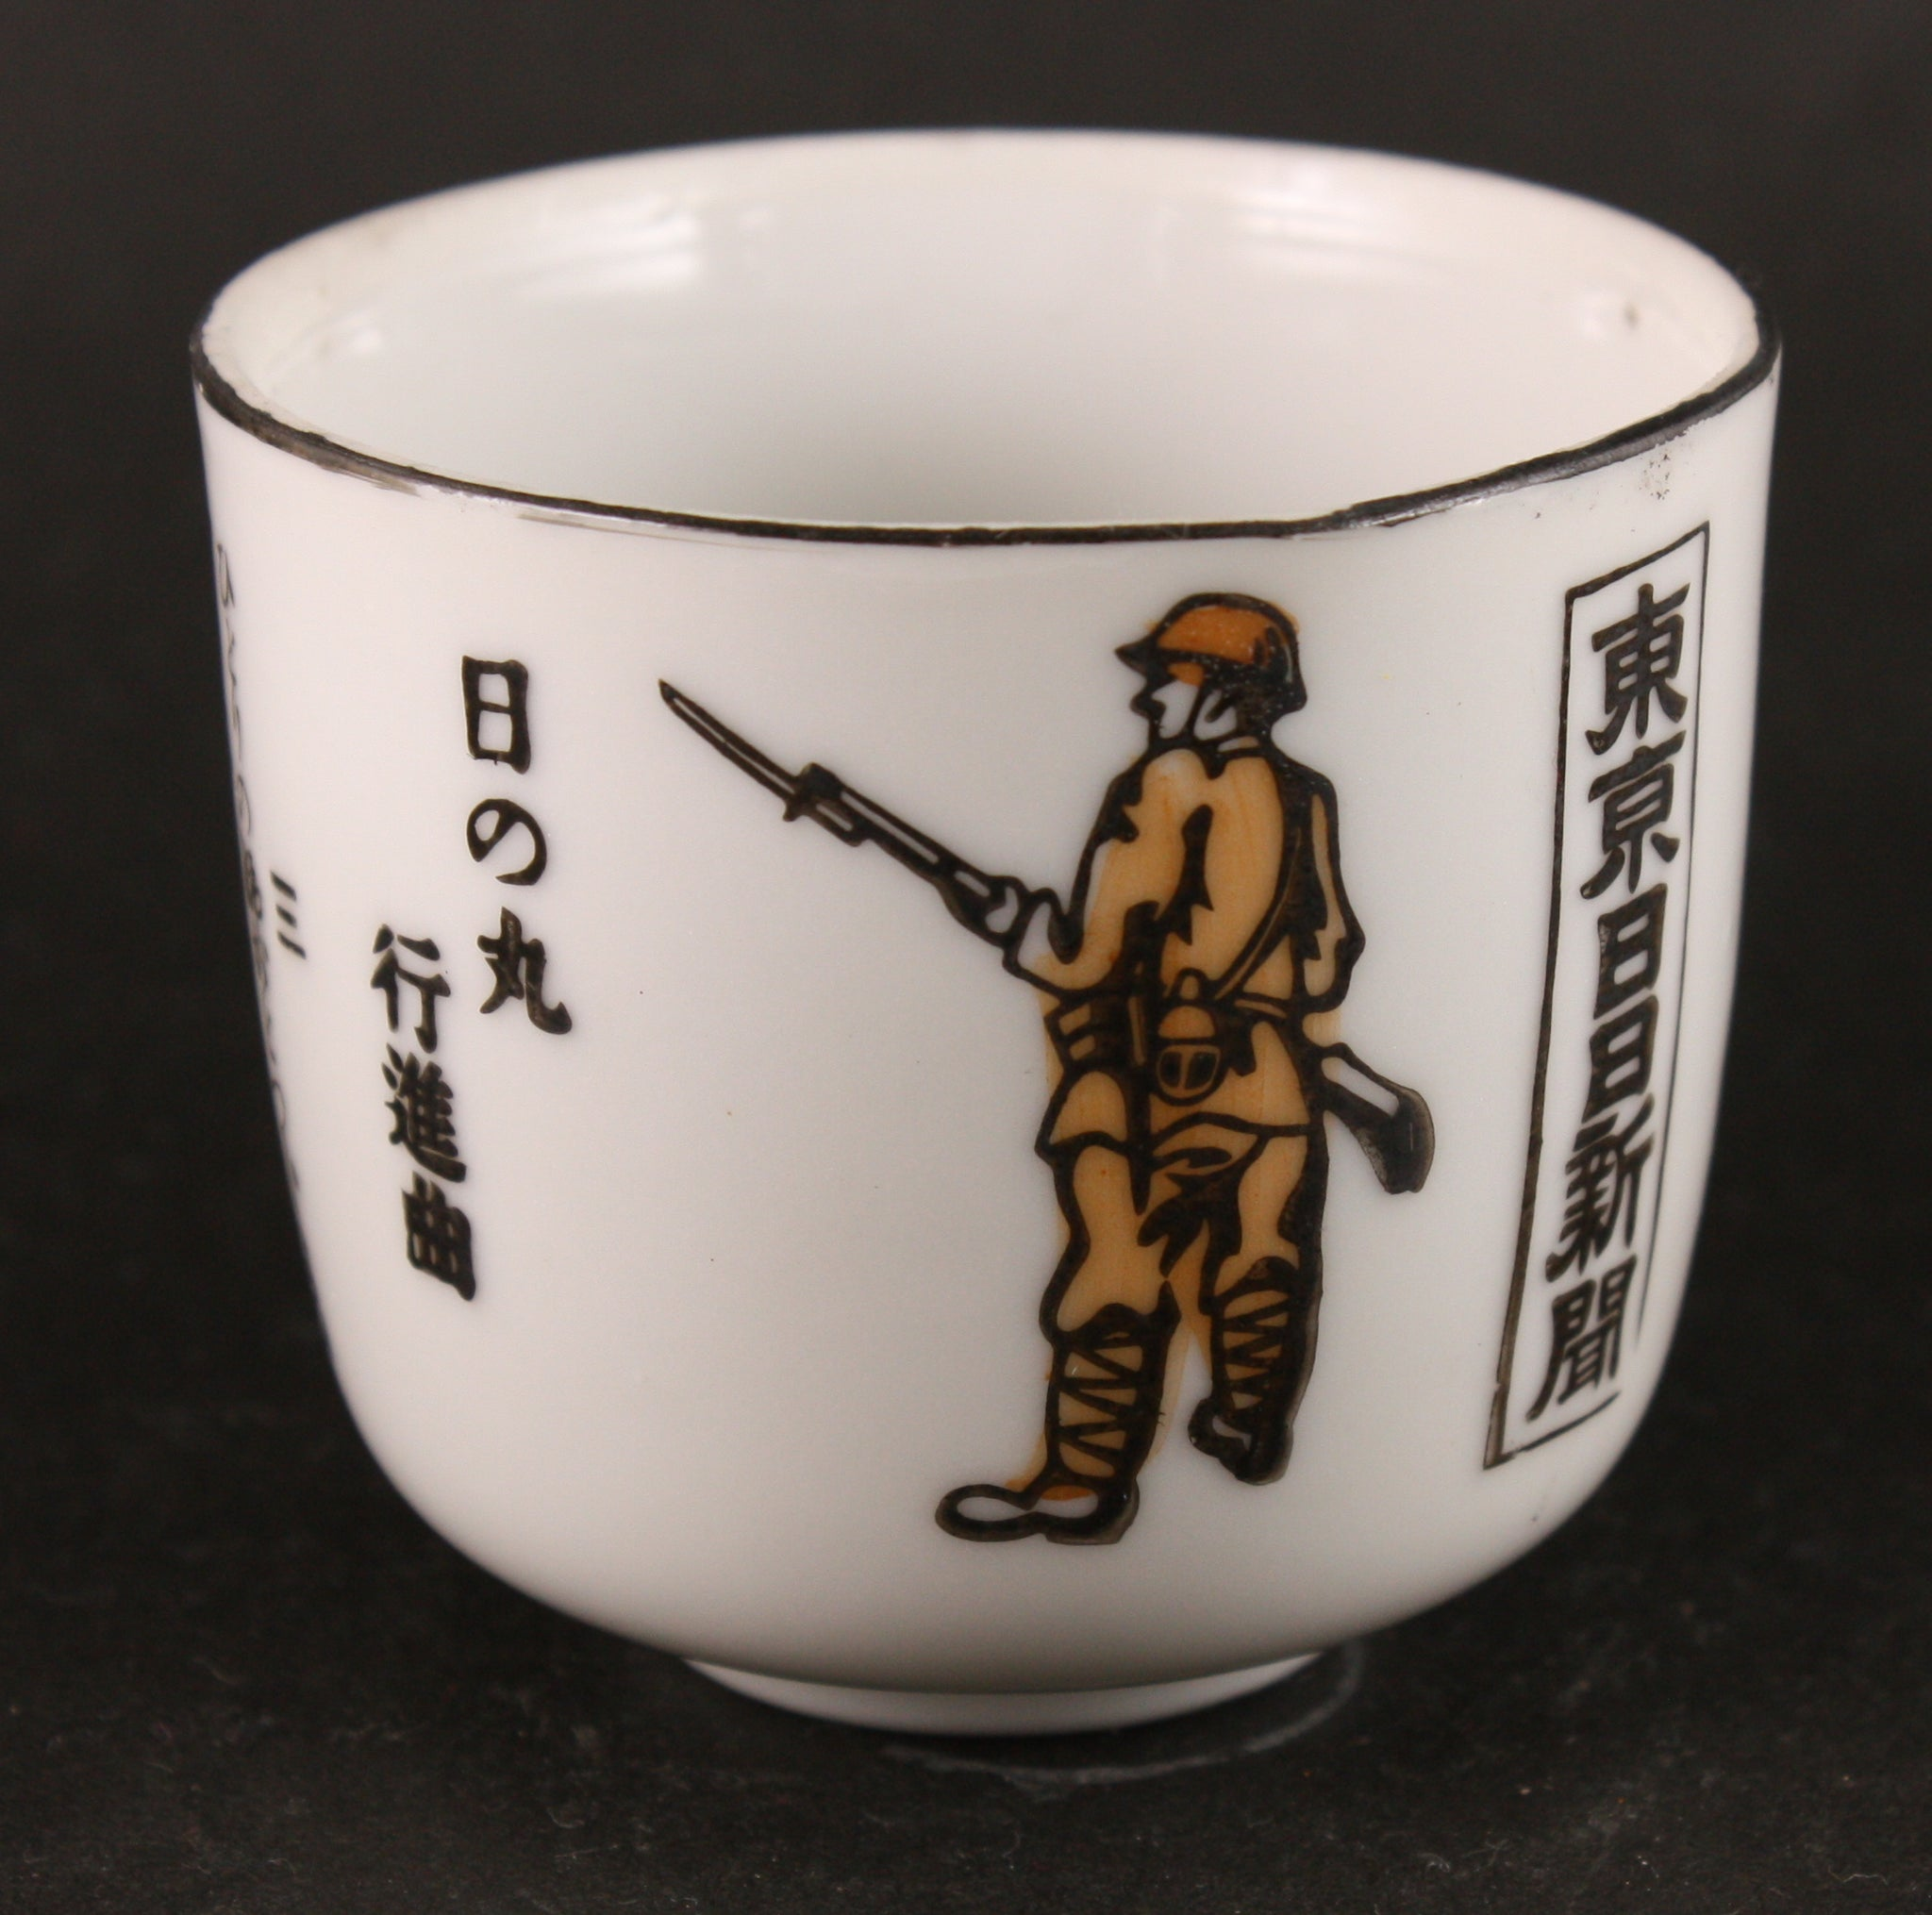 Antique Japanese Military 1938 Hinomaru March Lyrics Soldier Army Cup